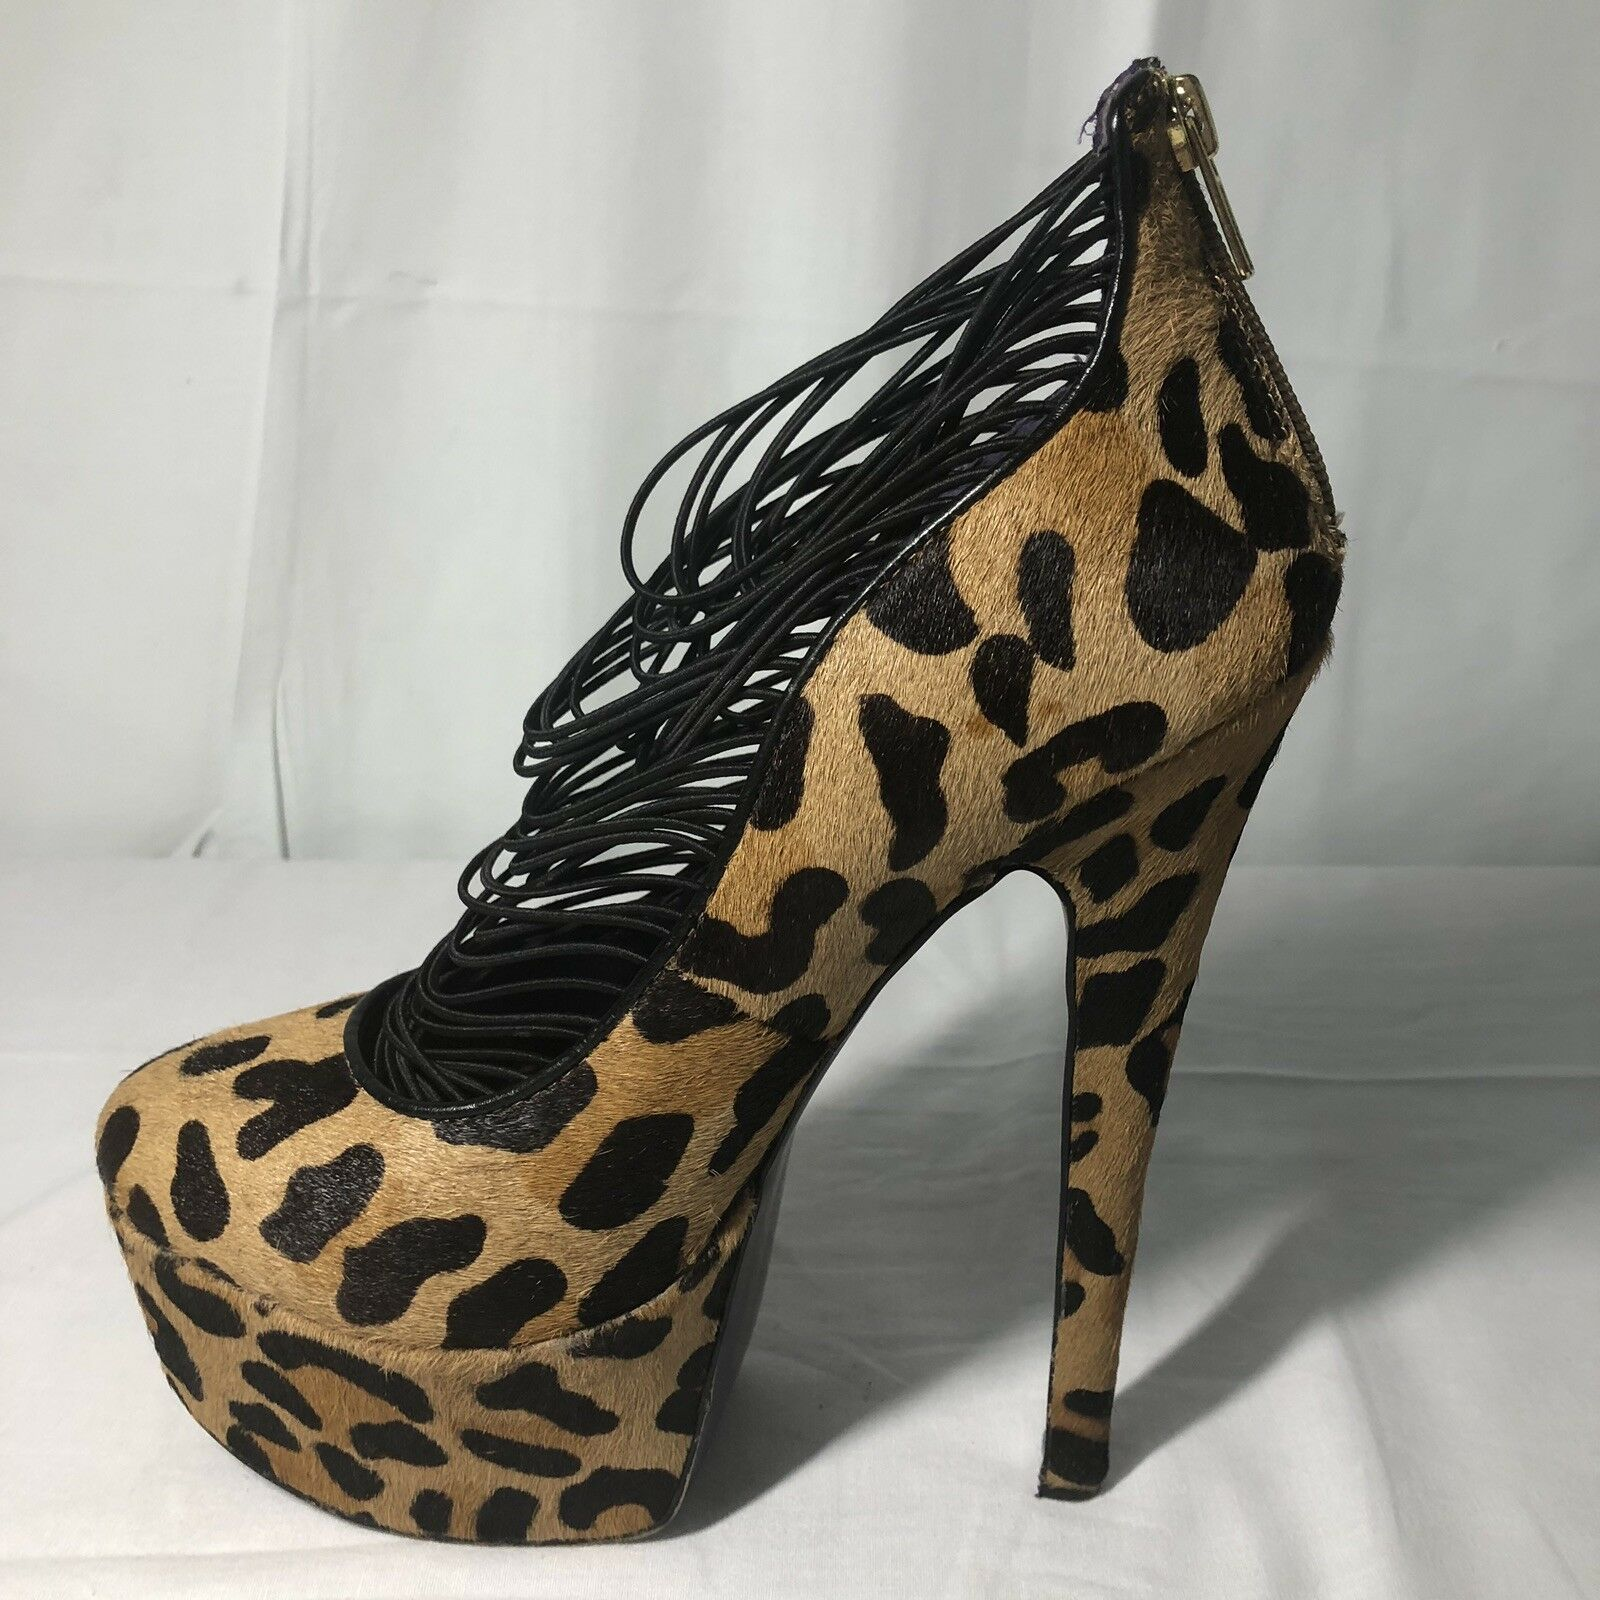 London Trash Print Größe 9 Leopard Print Trash Pony Hair Platform Drag Runway Stiletto Heels 444f15